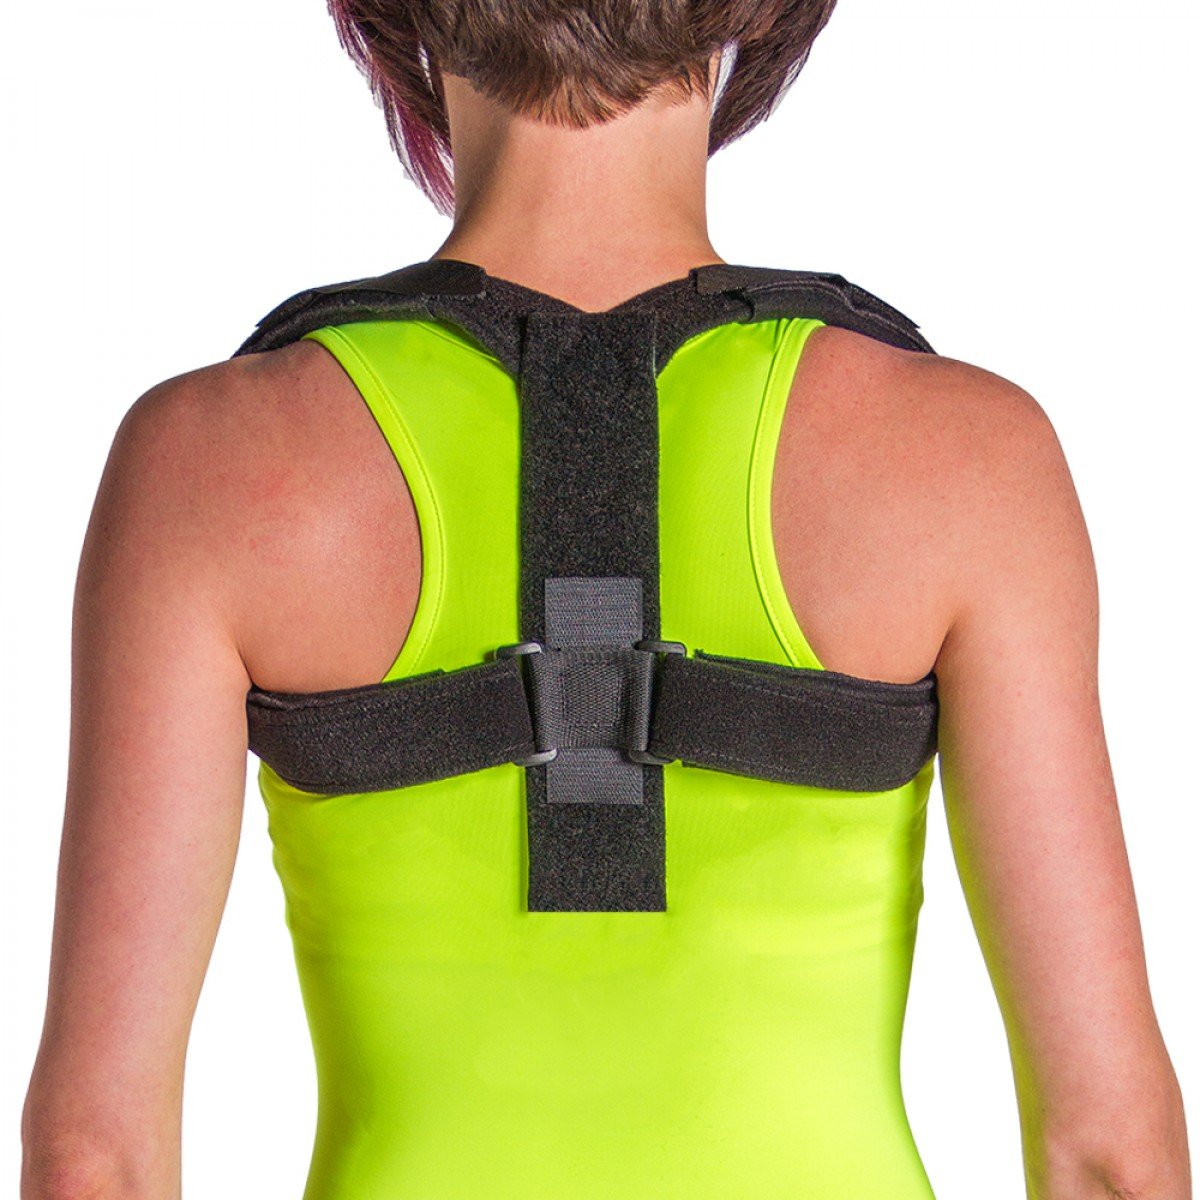 BraceAbility Posture Corrector Brace | Upper Back Straightener to Fix Hunched, Rounded or Stooped Shoulders, Forward Head and Neck Posture Improvement at Home or Work (Small) by BraceAbility